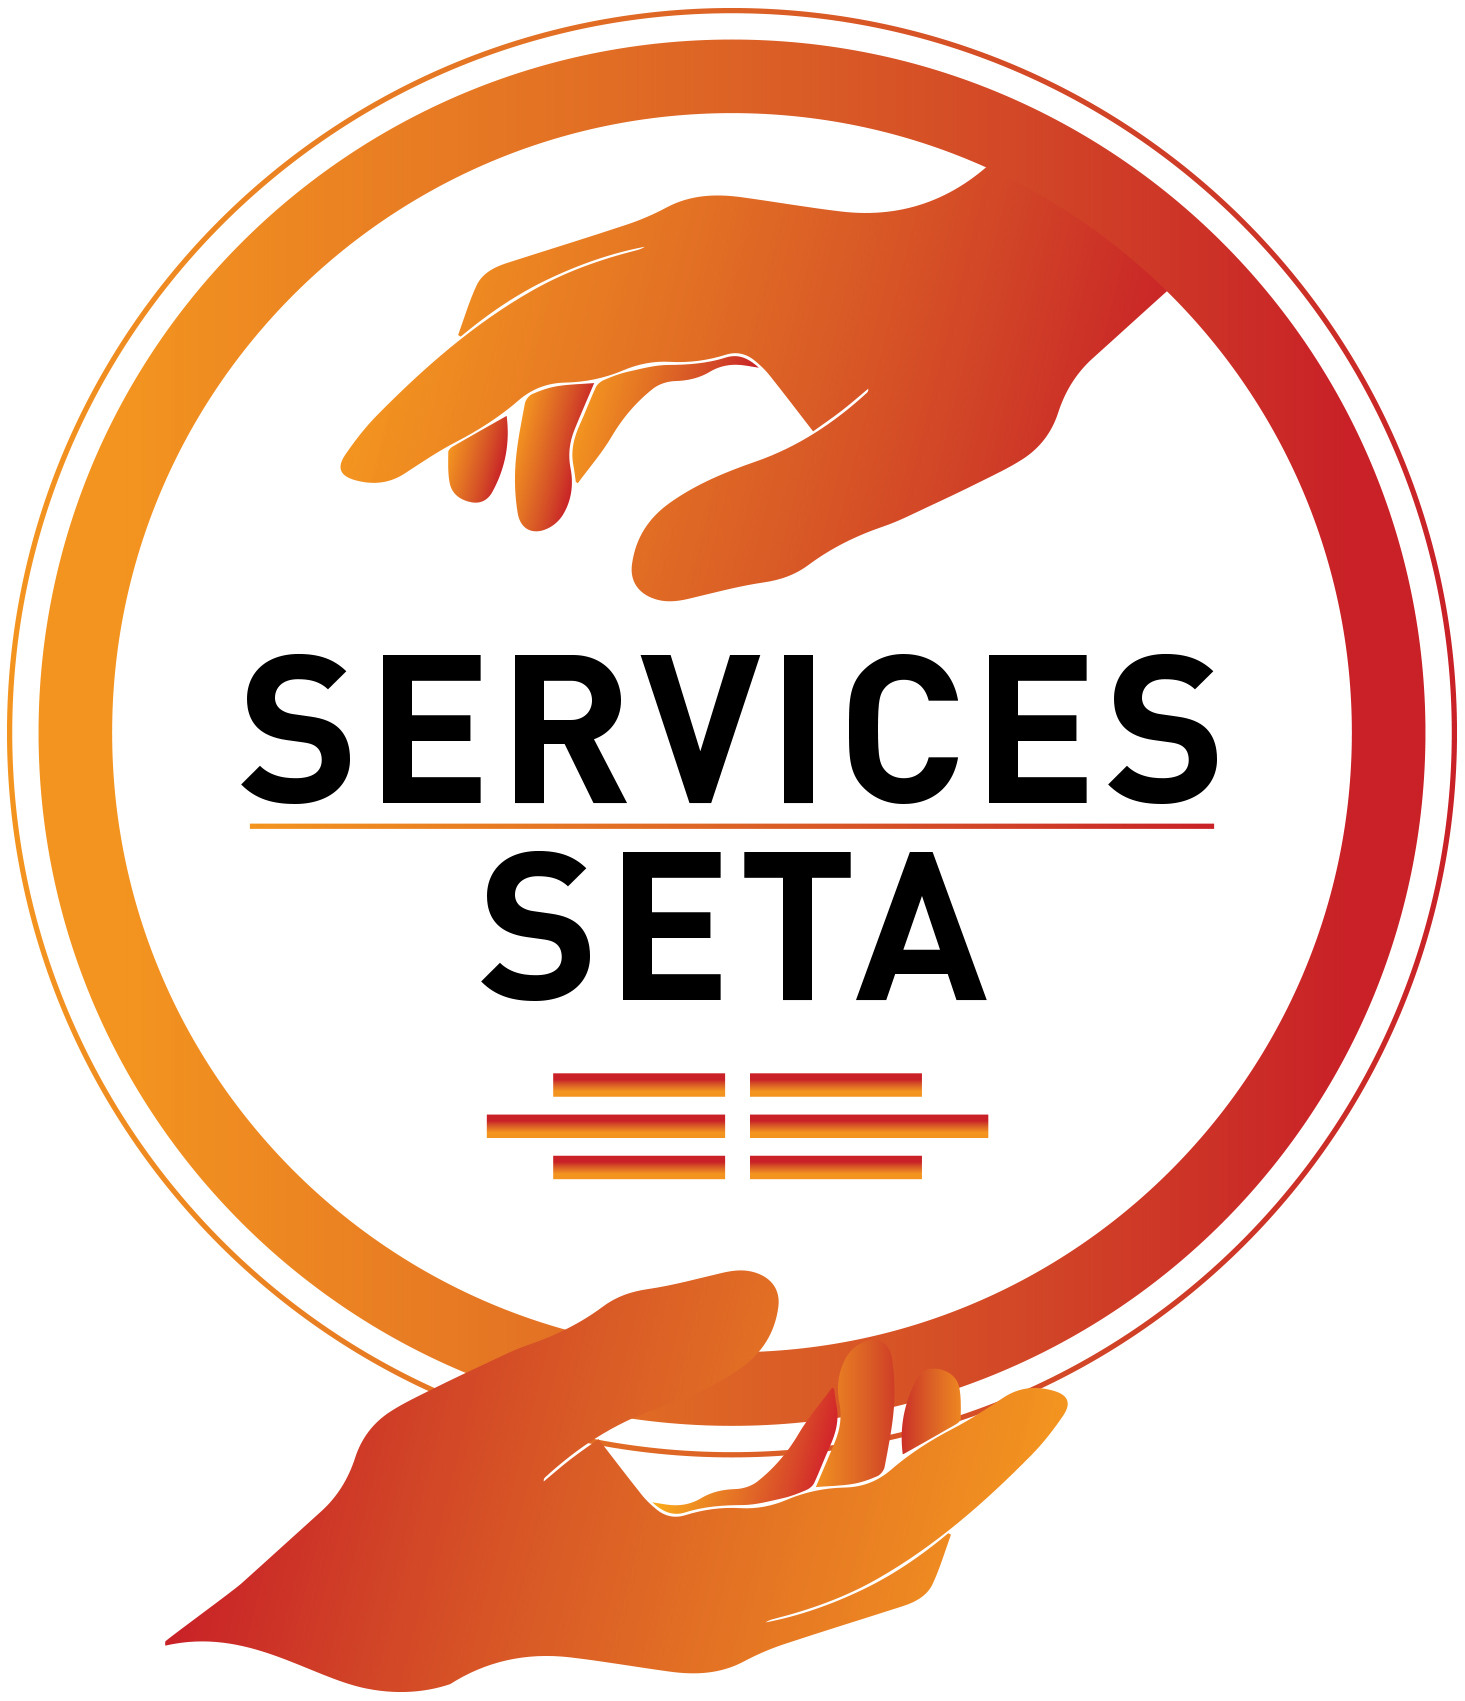 Services SETA - Pro-Active Communications